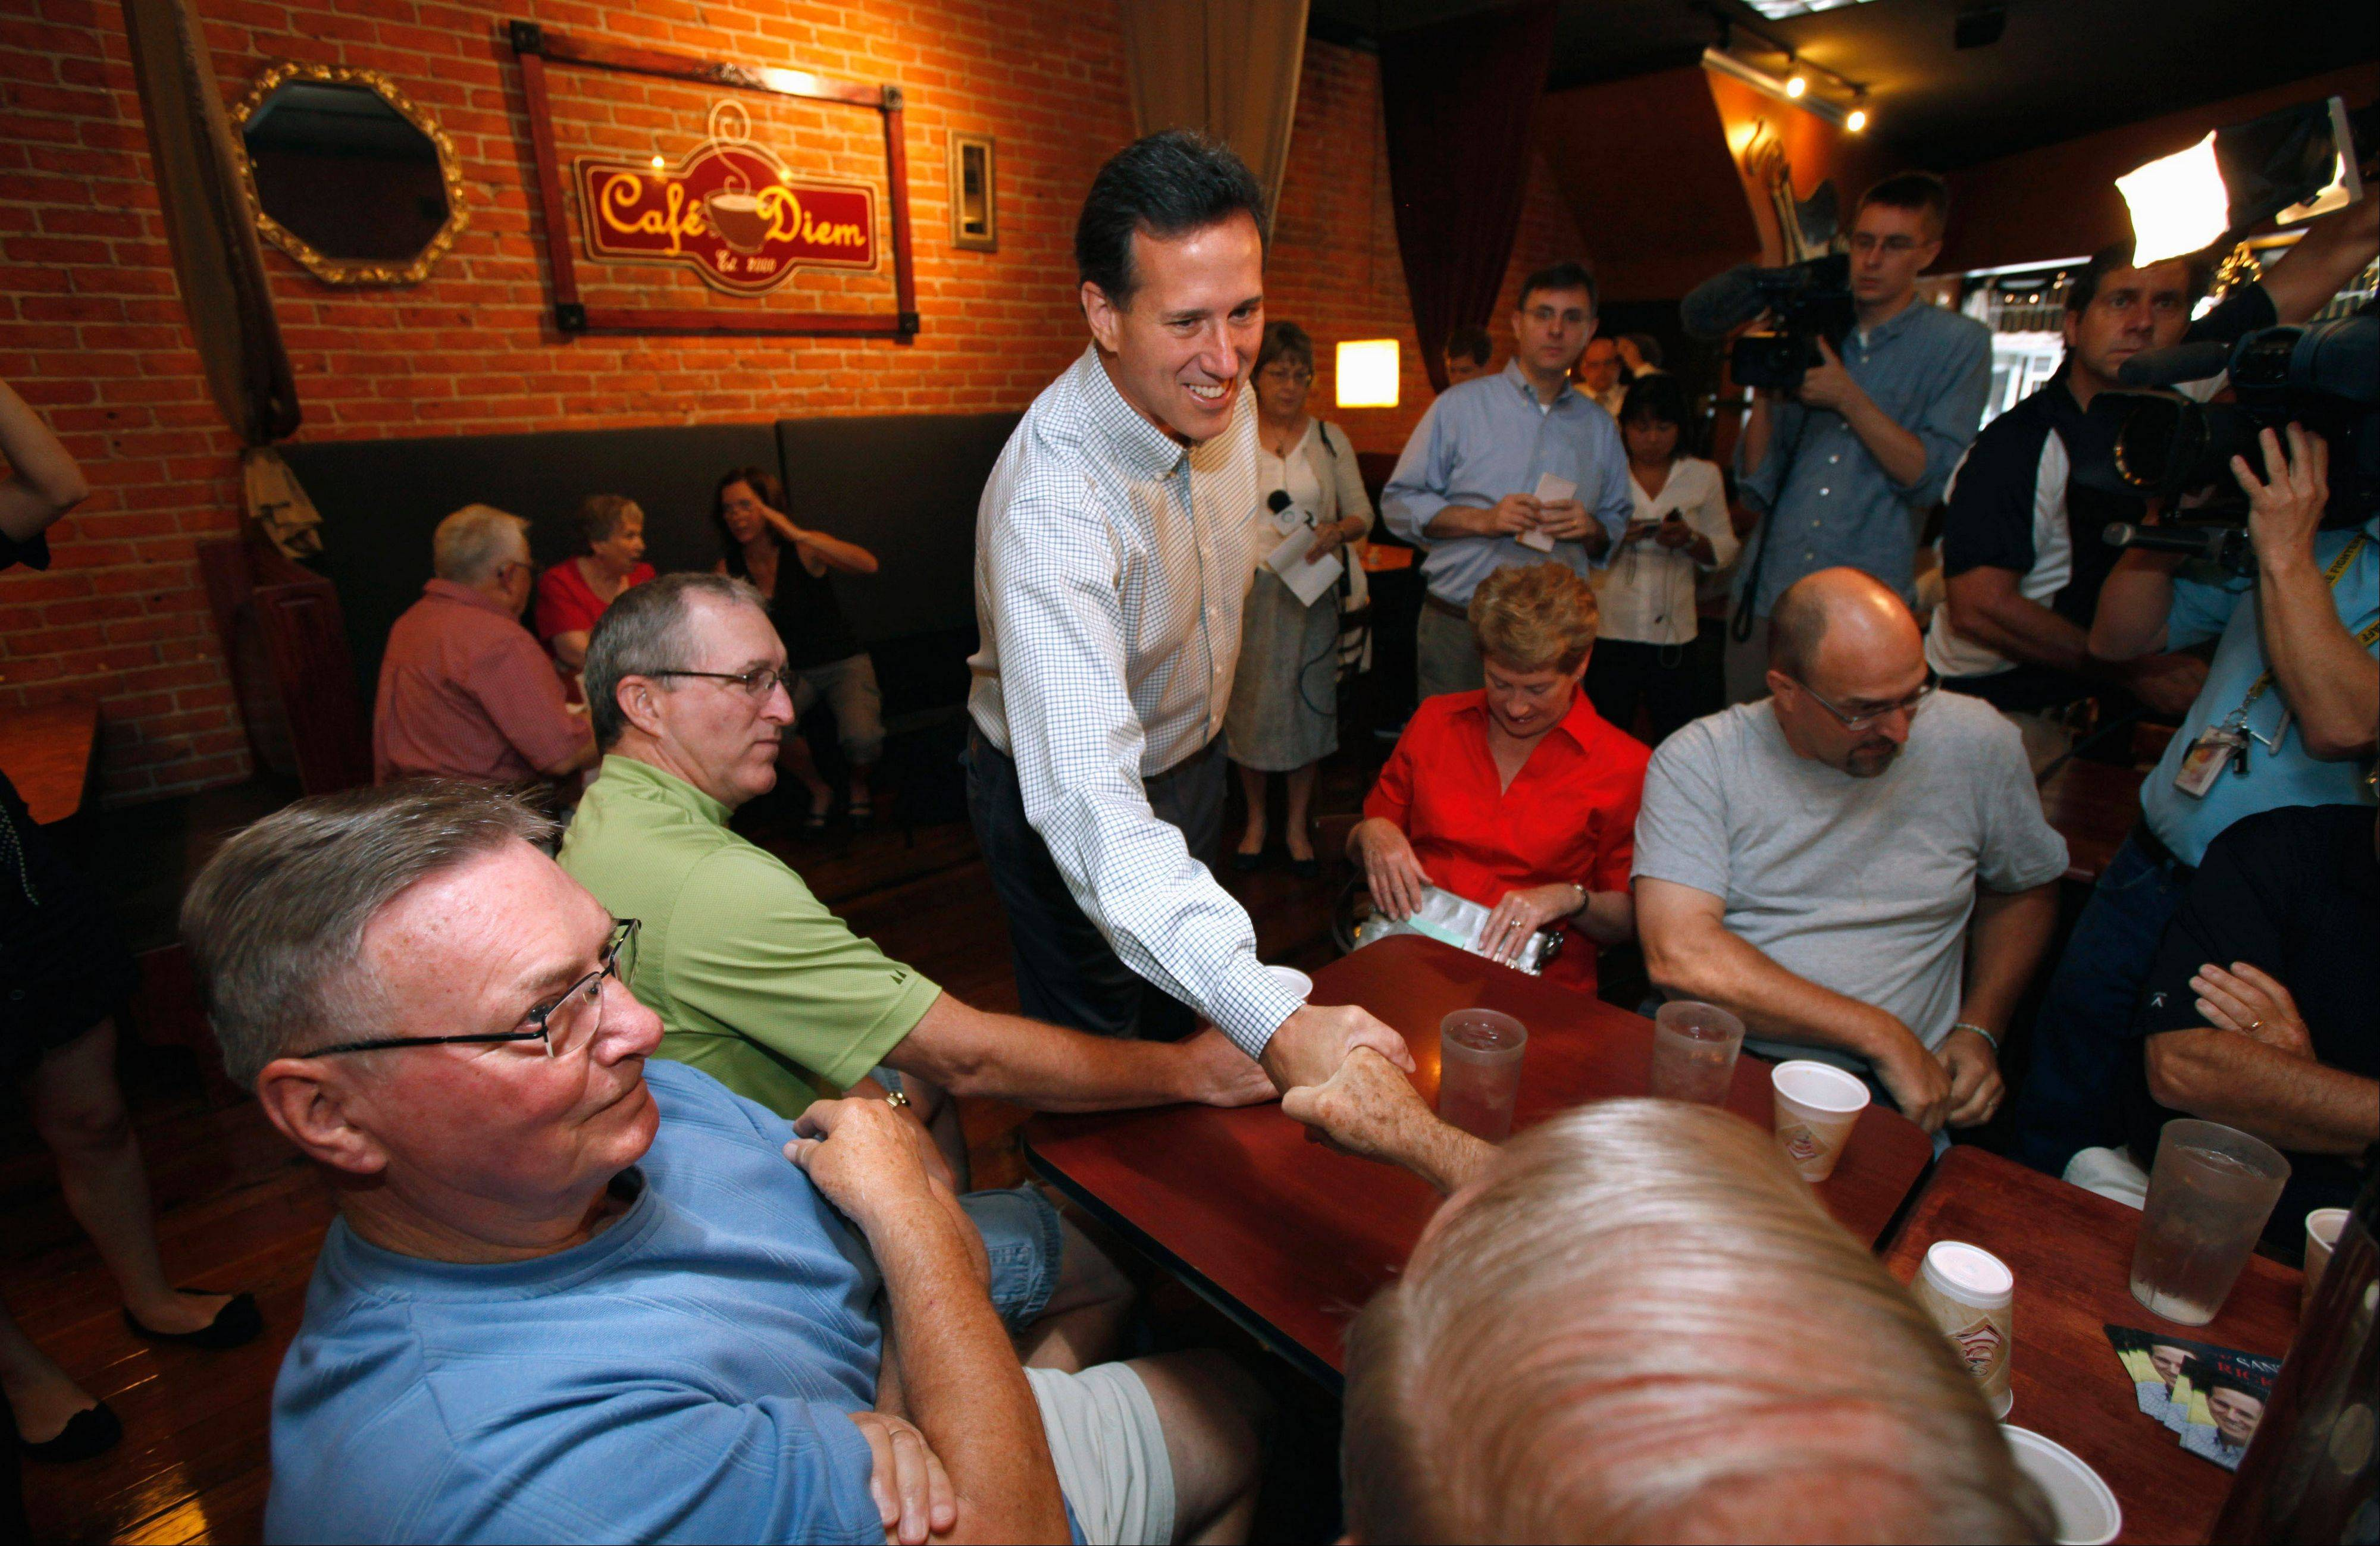 Former Pennsylvania Sen. Rick Santorum, center, greets local residents before speaking in a coffee shop Monday in Ames, Iowa.